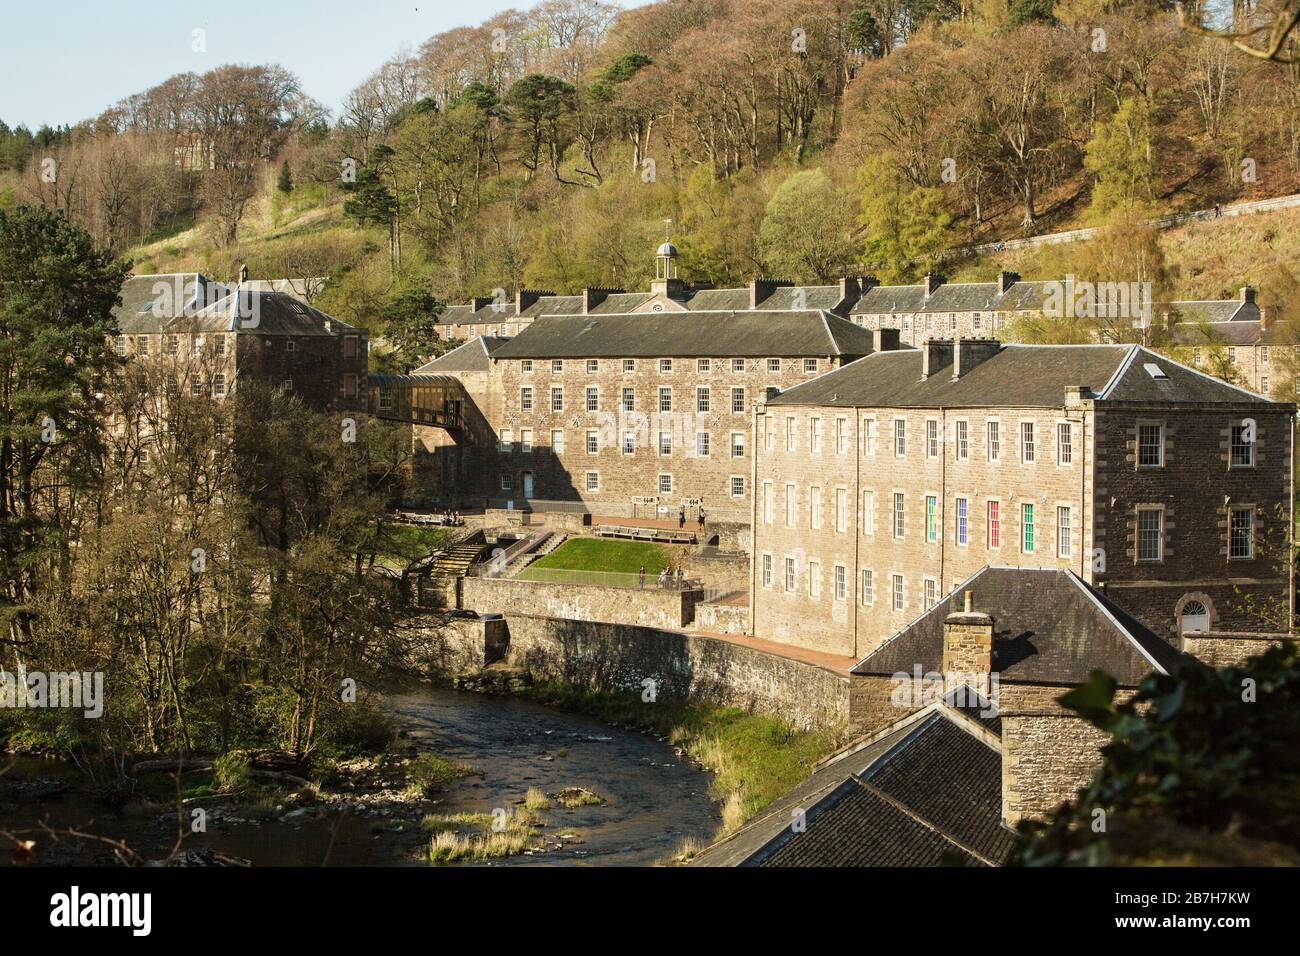 View of the village and mills of New Lanark World Heritage Site beside the River Clyde, New Lanark, Scotland Stock Photo